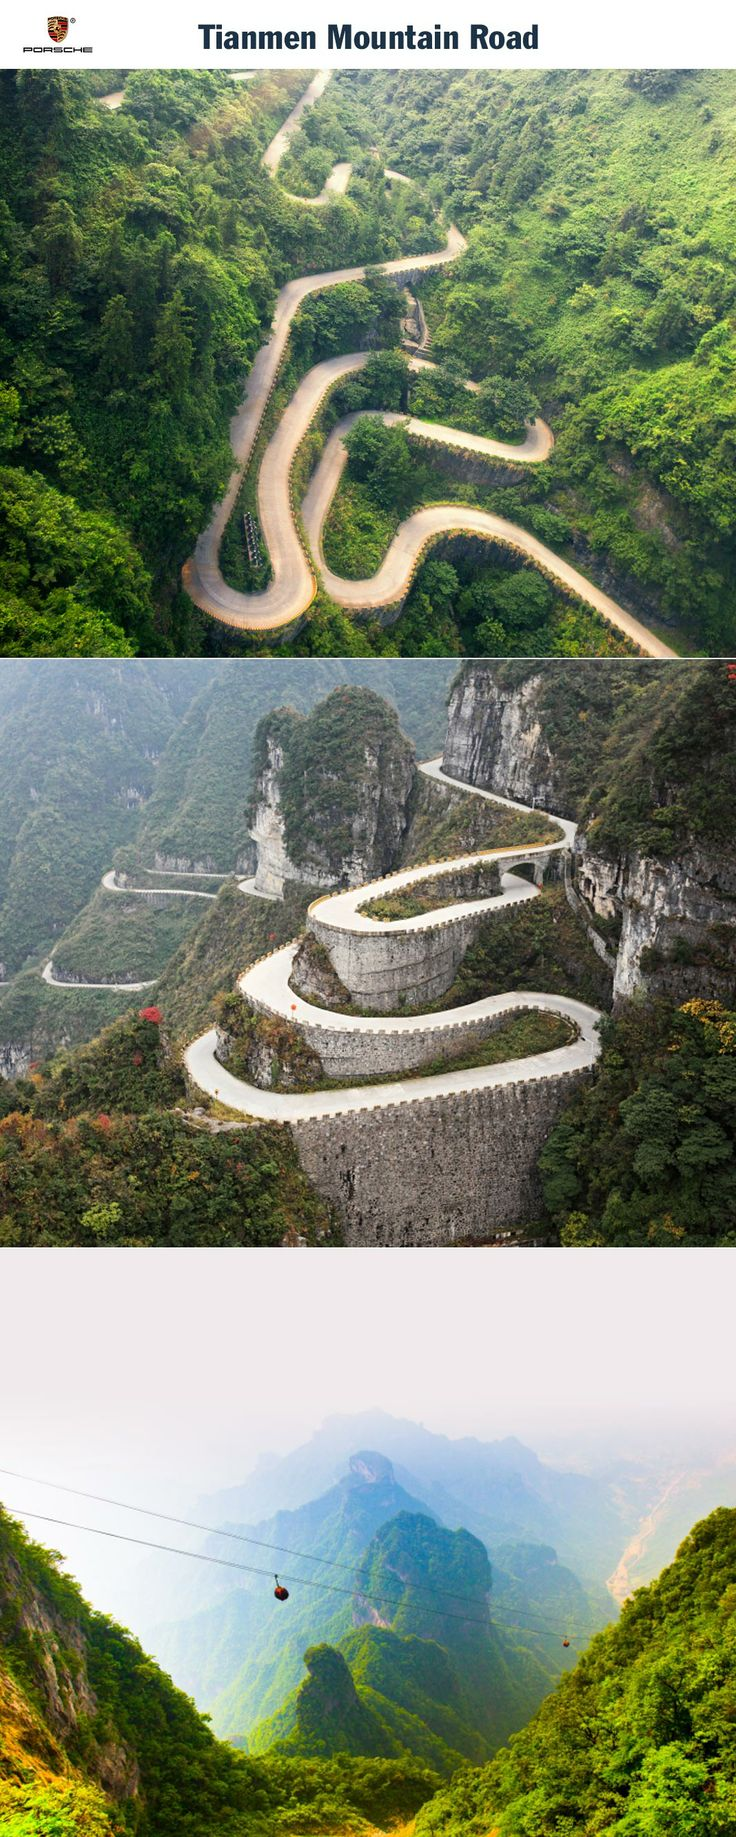 Tianmen Mountain Road, China. Winding your way through the Middle Kingdom. Start: Changde. Destination: Tianmen Mountain. Driving time: Approx. 6 hours. Distance: Approx. 320 km (199 miles). Recommended travel time: May - October.   Learn more: http://link.porsche.com/gts/china